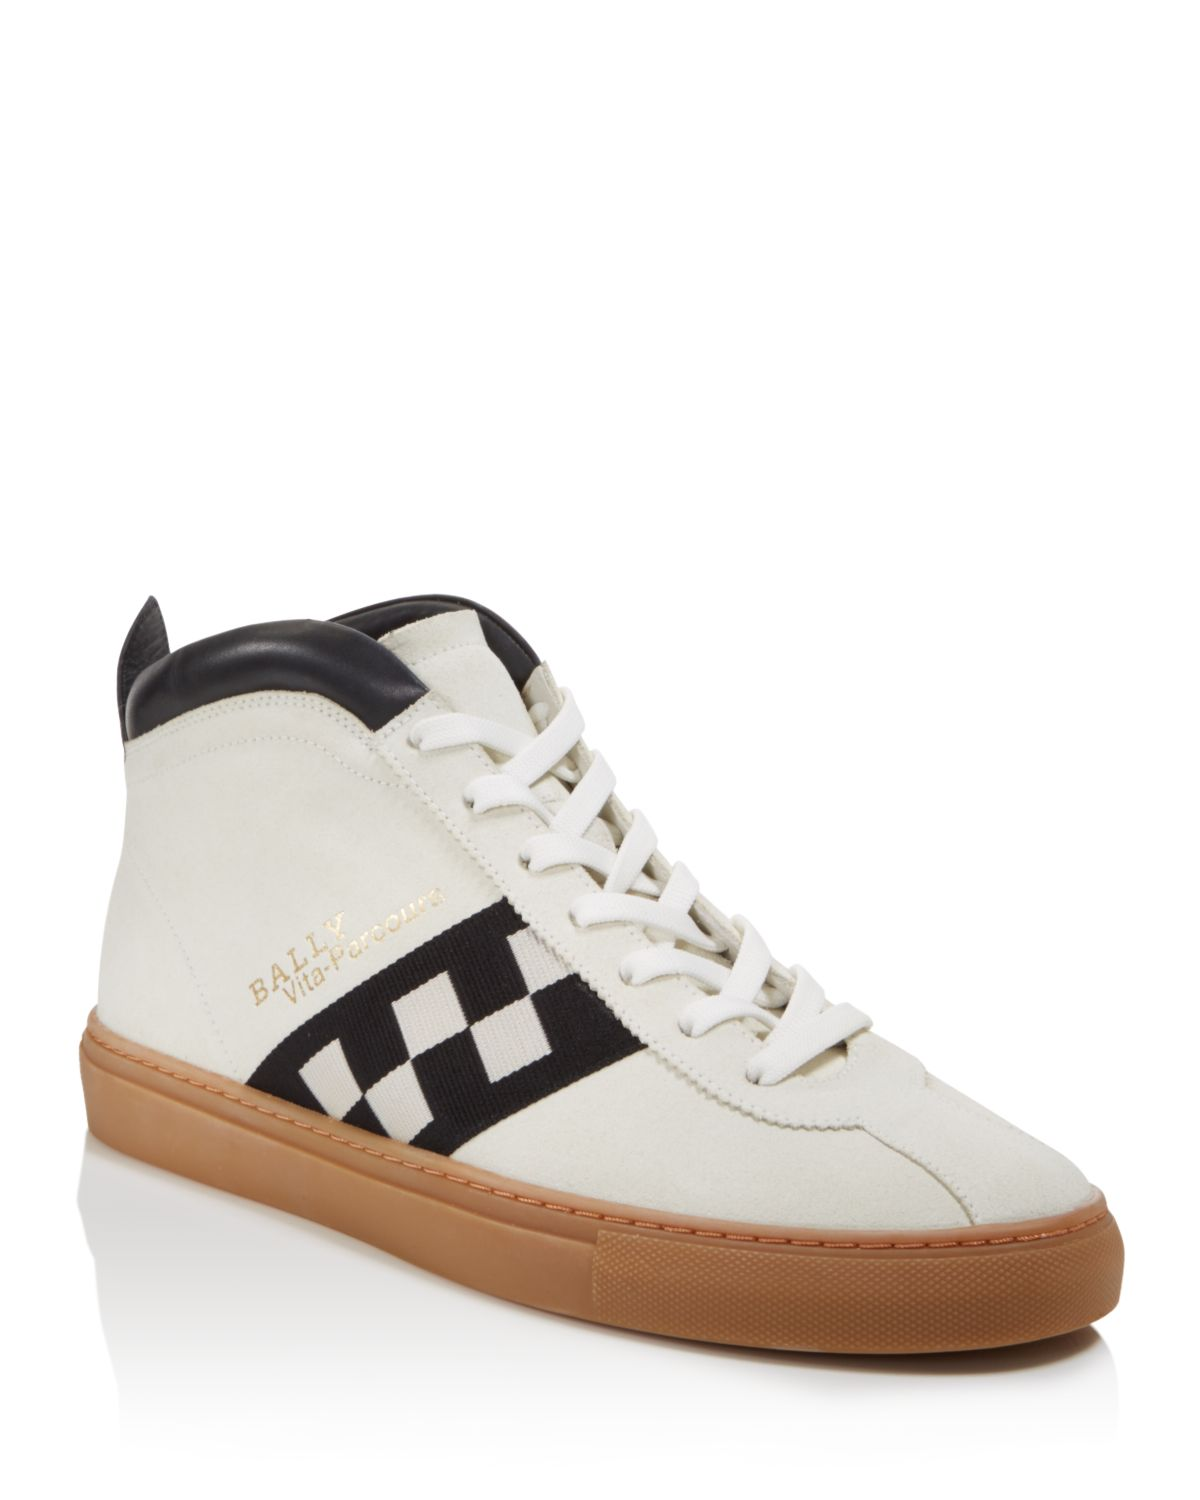 BallyMen's The Vita Parcours Sneakers